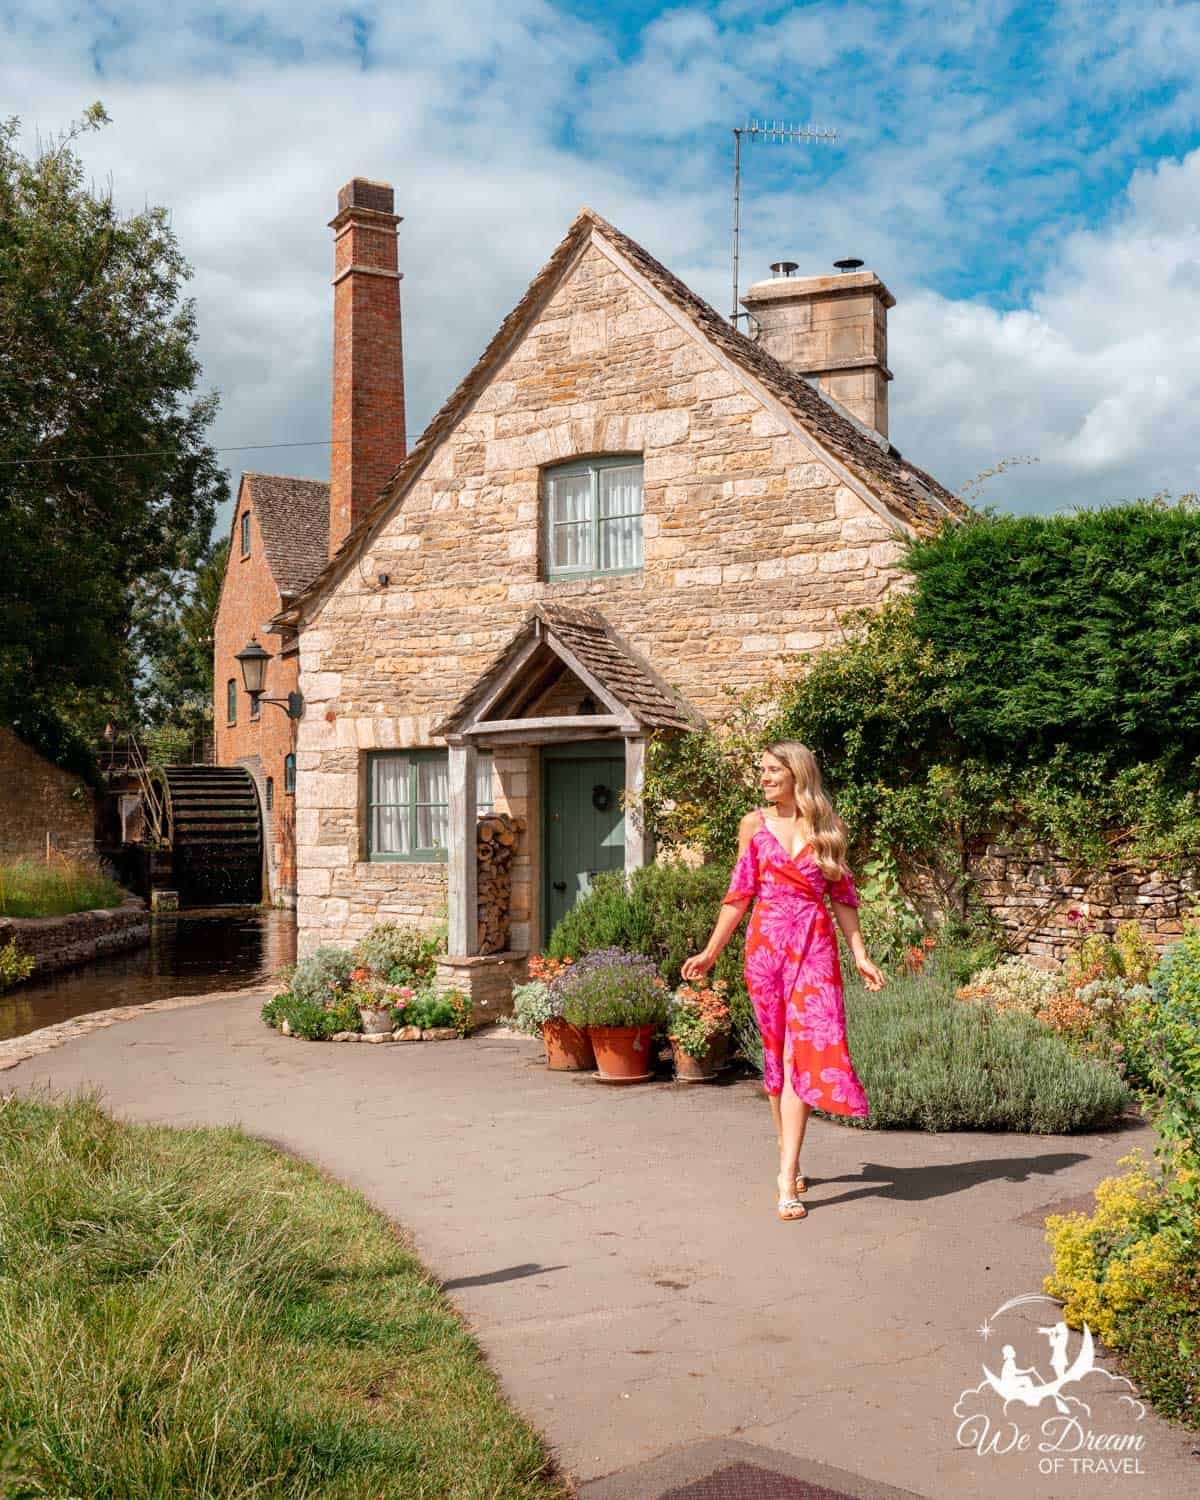 A girl in front of a cottage and mill in Lower Slaughter village in the Cotswolds